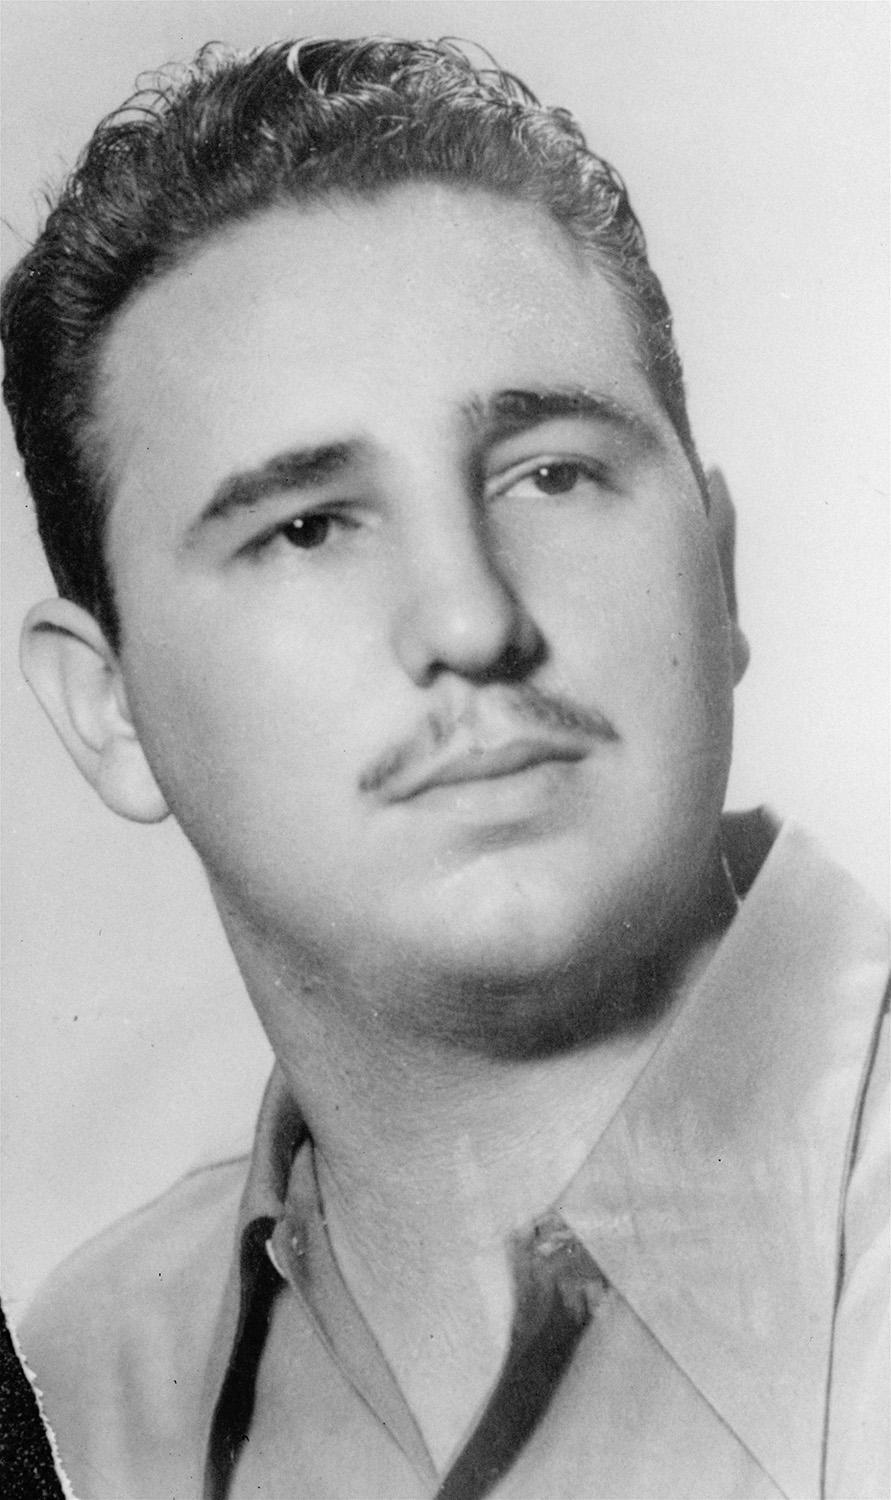 <p>In this undated file photo, Fidel Castro poses for a portrait in an unknown location. (AP Photo) </p>